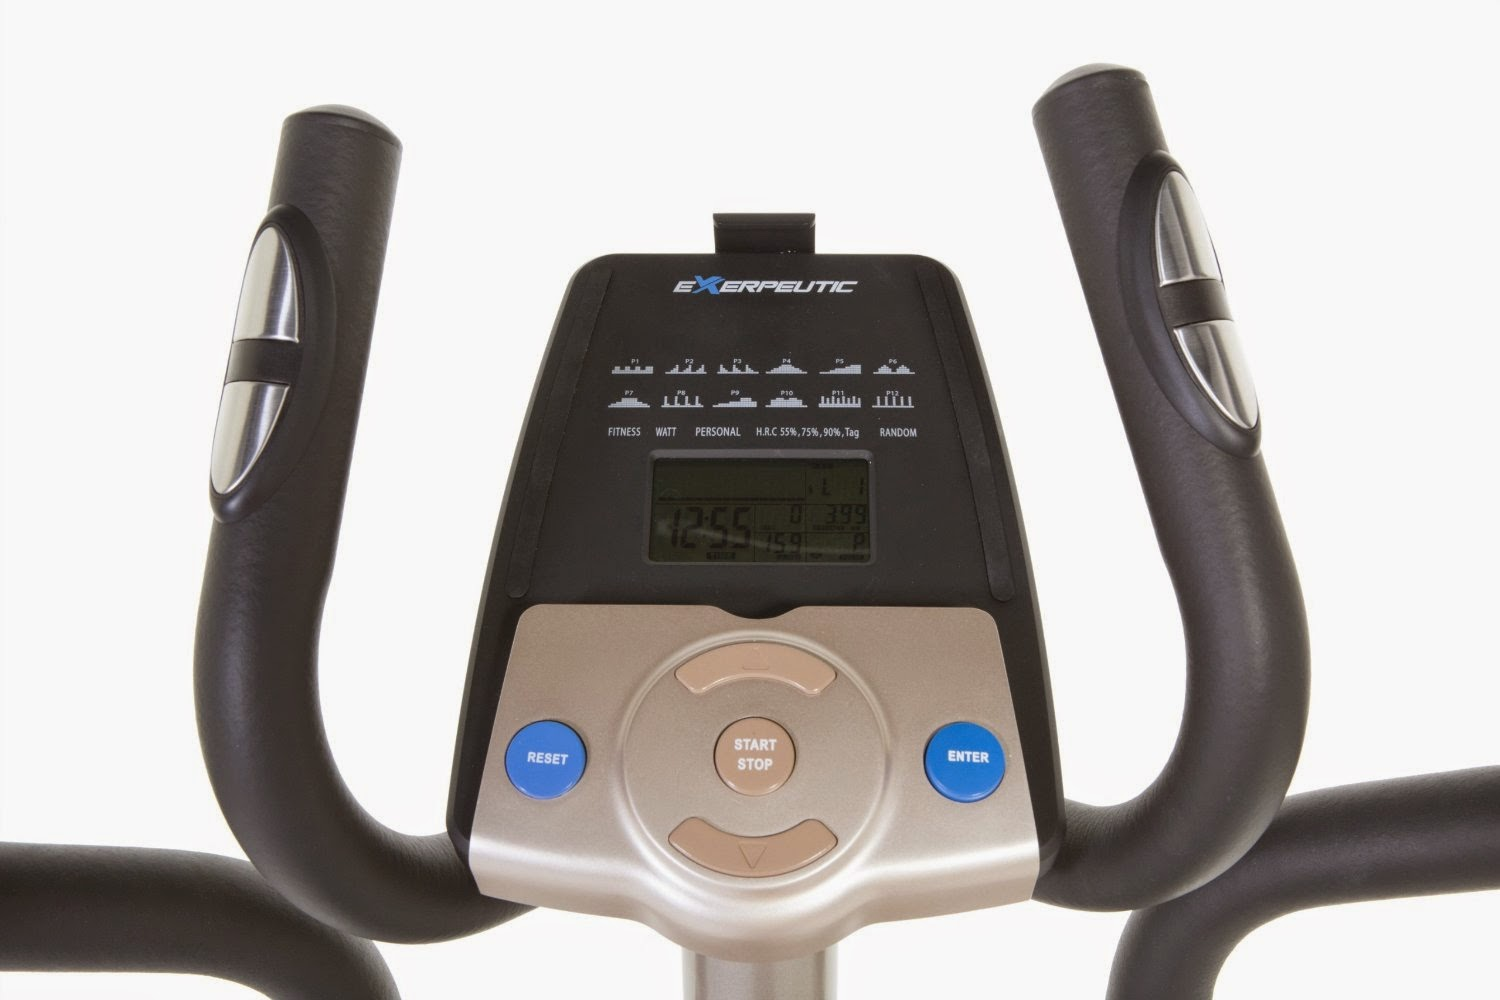 Exerpeutic 5000 Elliptical Trainer Console with control buttons, compare with Exerpeutic 4000